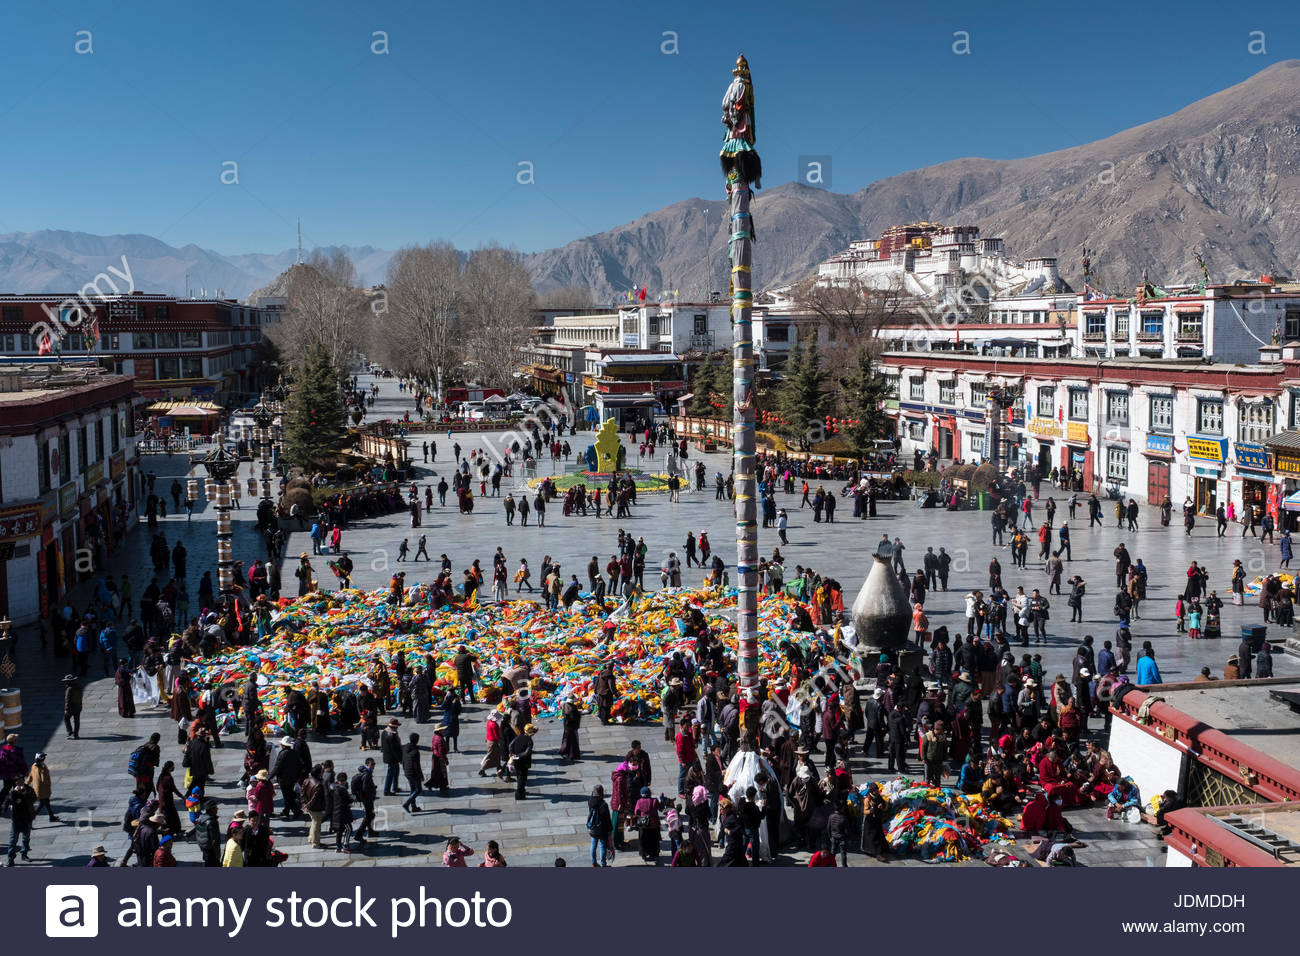 Discarded prayer flags from monasteries are put out in Barkhor Square for people to take home. - Stock Image